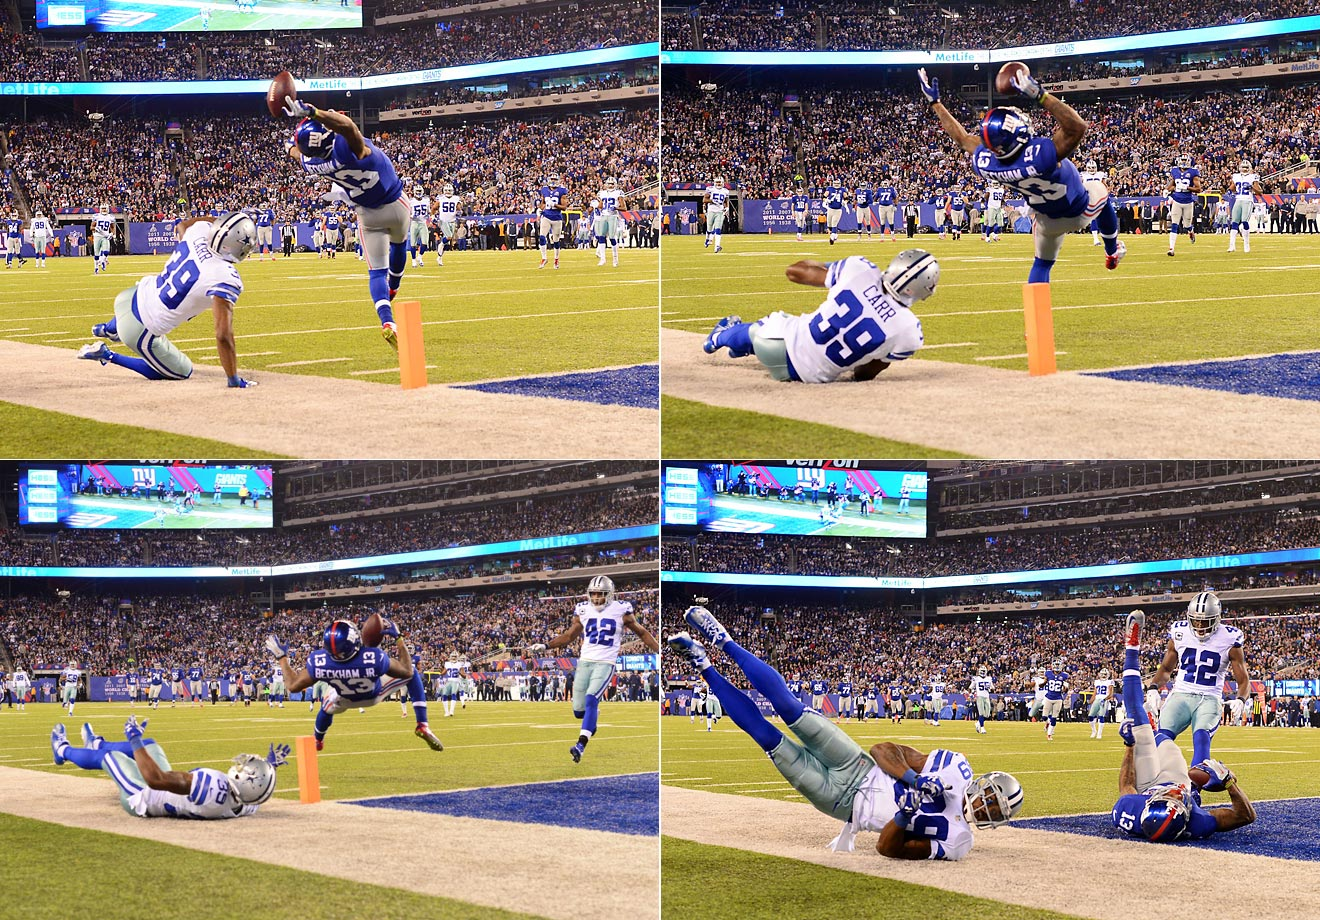 Giants wide receiver Odell Beckham Jr. made one of the best catches in NFL history Sunday night against Dallas, a 43-yard touchdown reception in the second quarter.